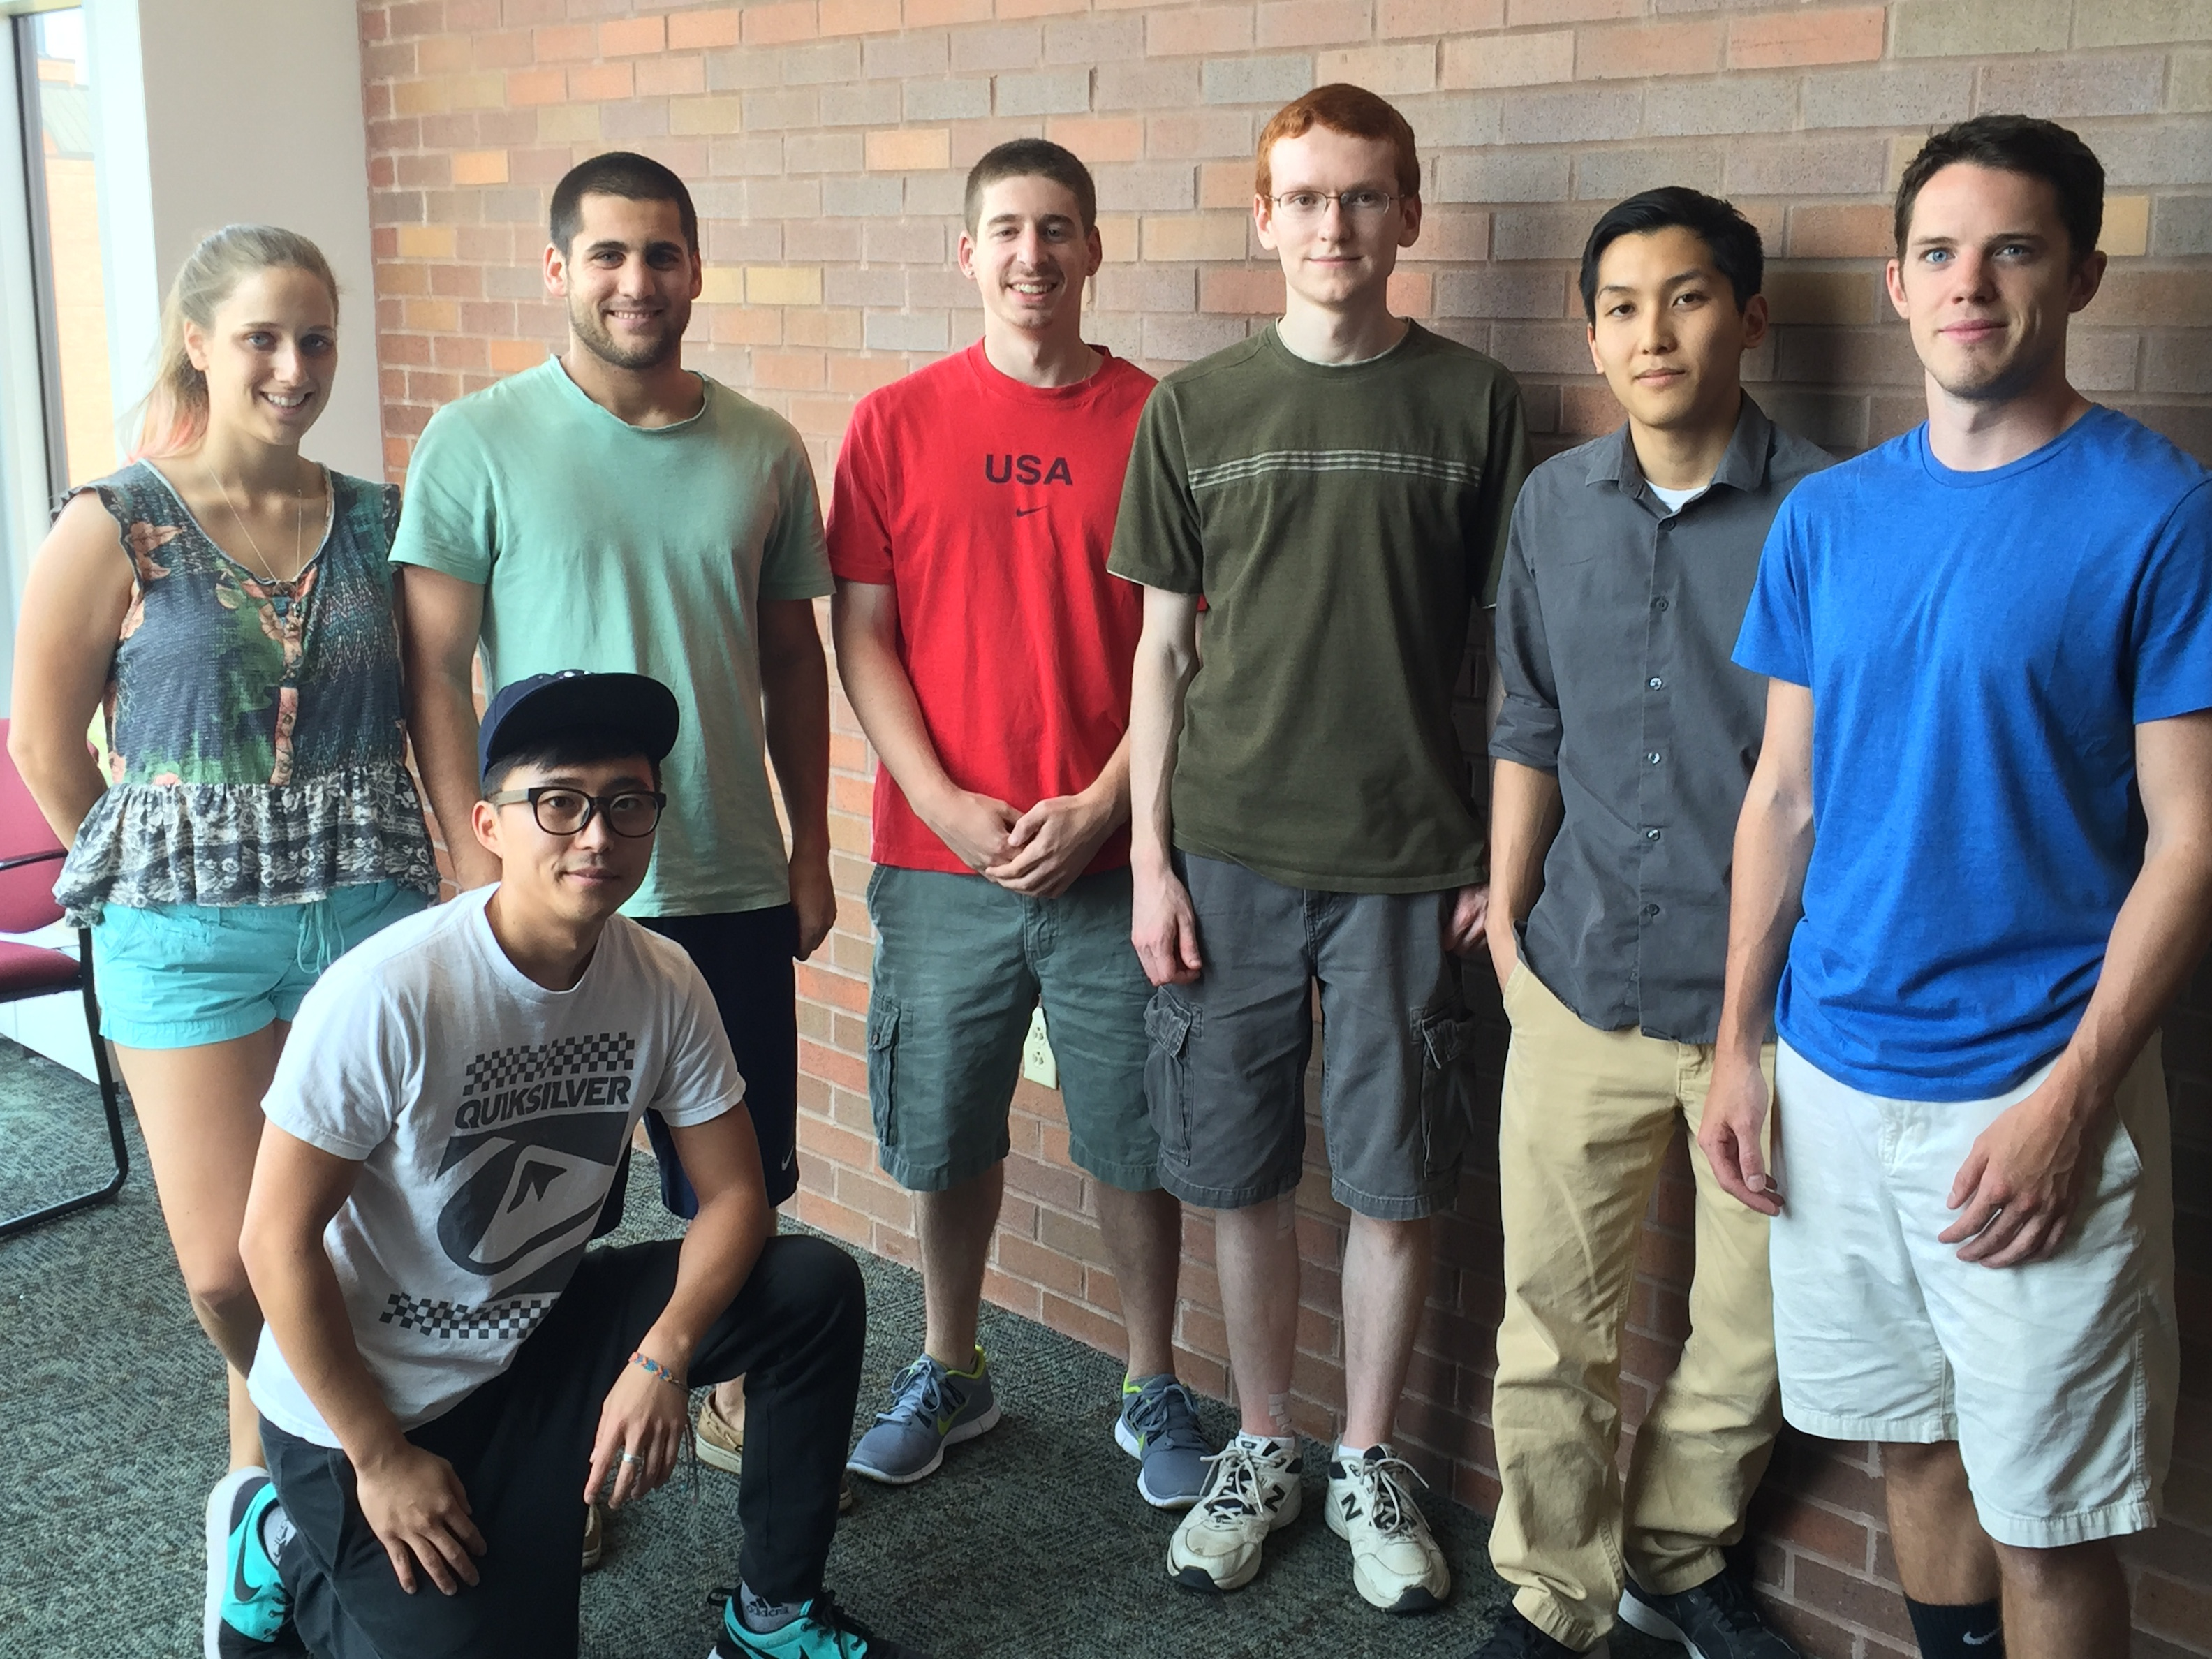 (From left to right): Jessa Dermit, Ted Kang, Steven Smith, Denis DiMartino, Matt Hube, Tyler Dao, Matt Ballerini